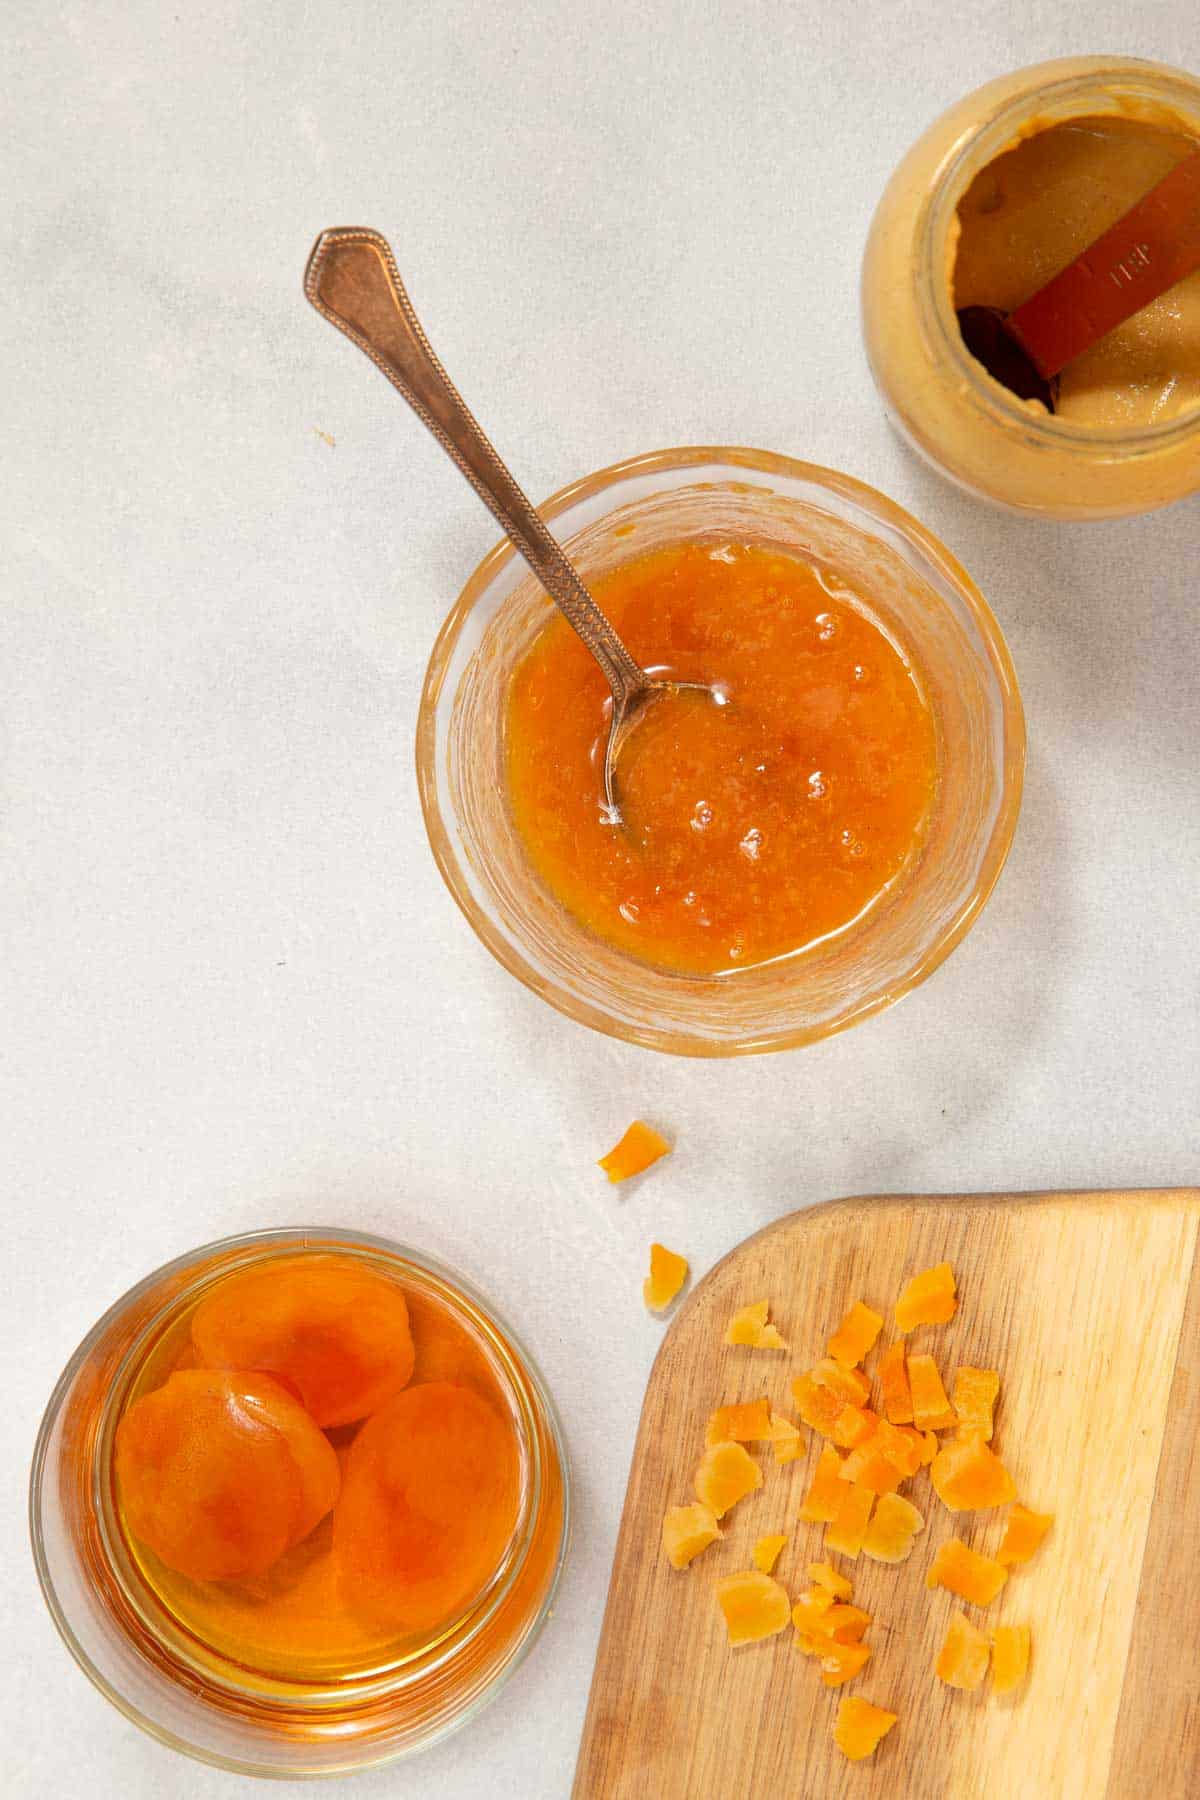 Apricots and preserves in glass jars